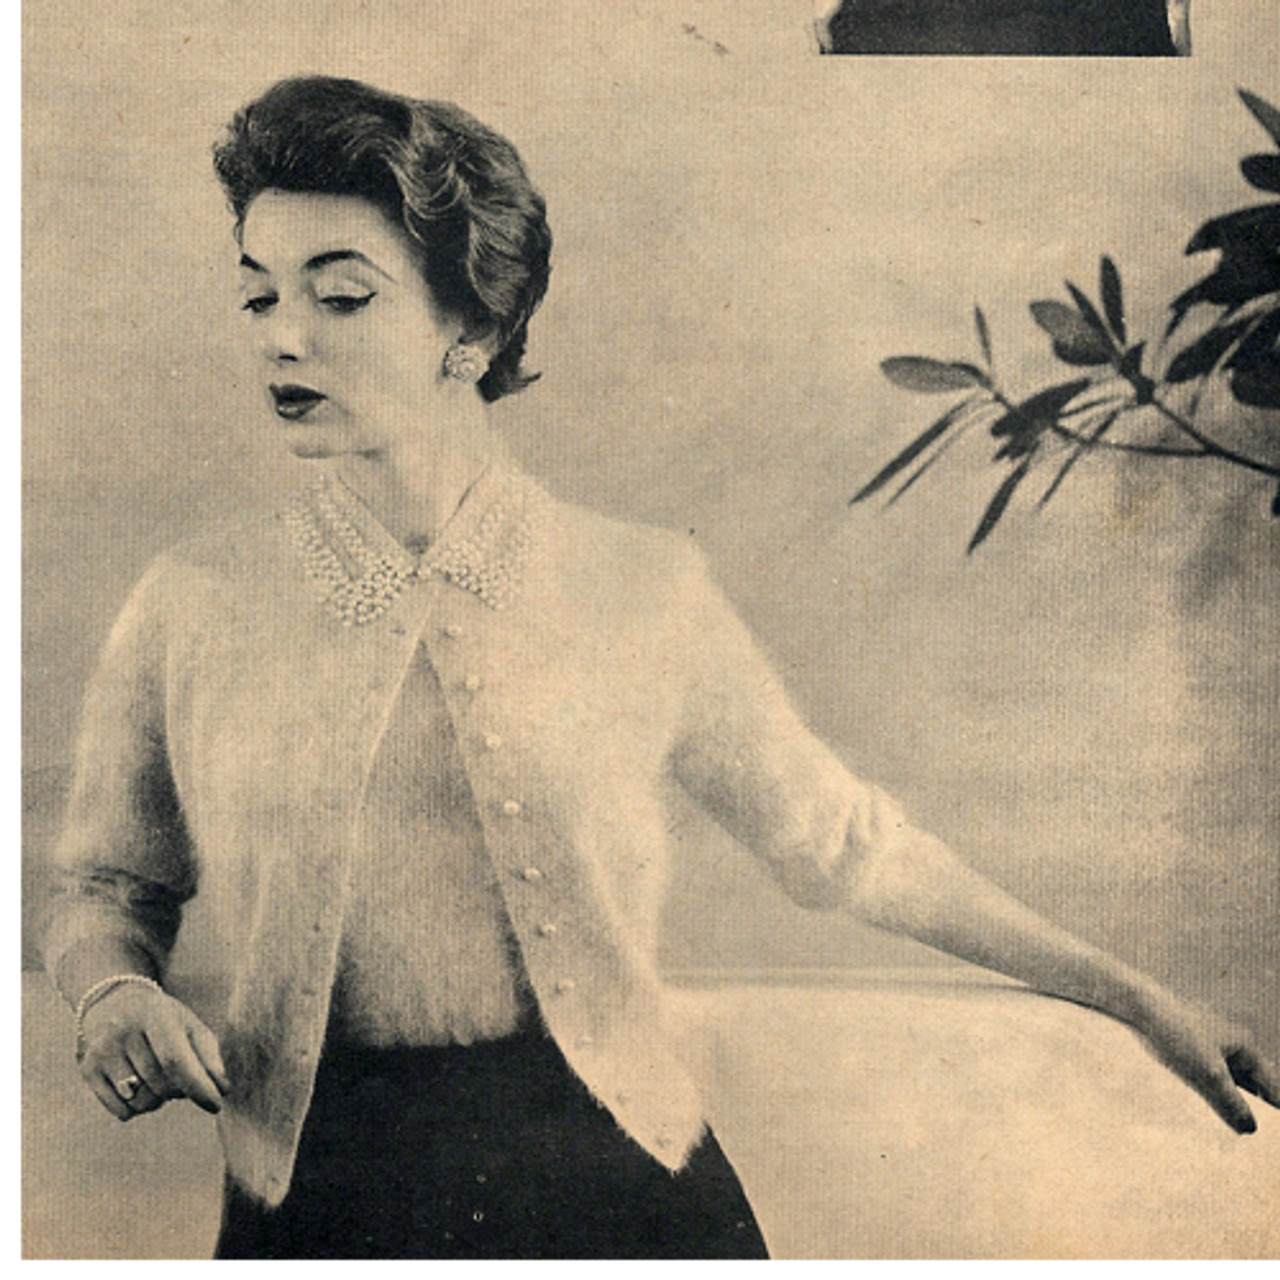 Short Sleeve Angora Cardigan Knitting Pattern